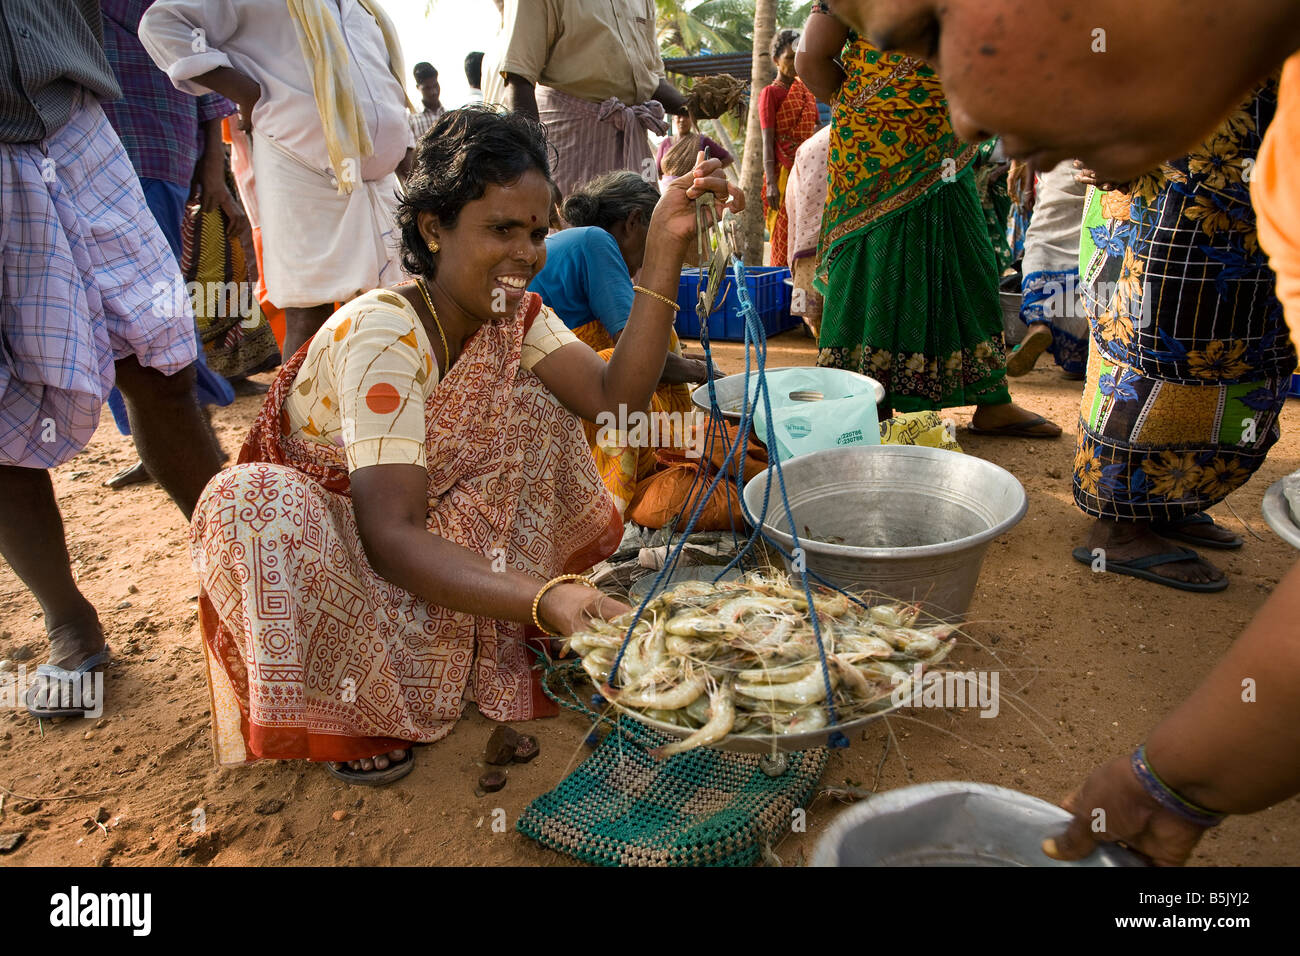 Tsunami survivors at Thalanguda fishing community the wife of a fisherman weighs fresh prawns to sell. - Stock Image